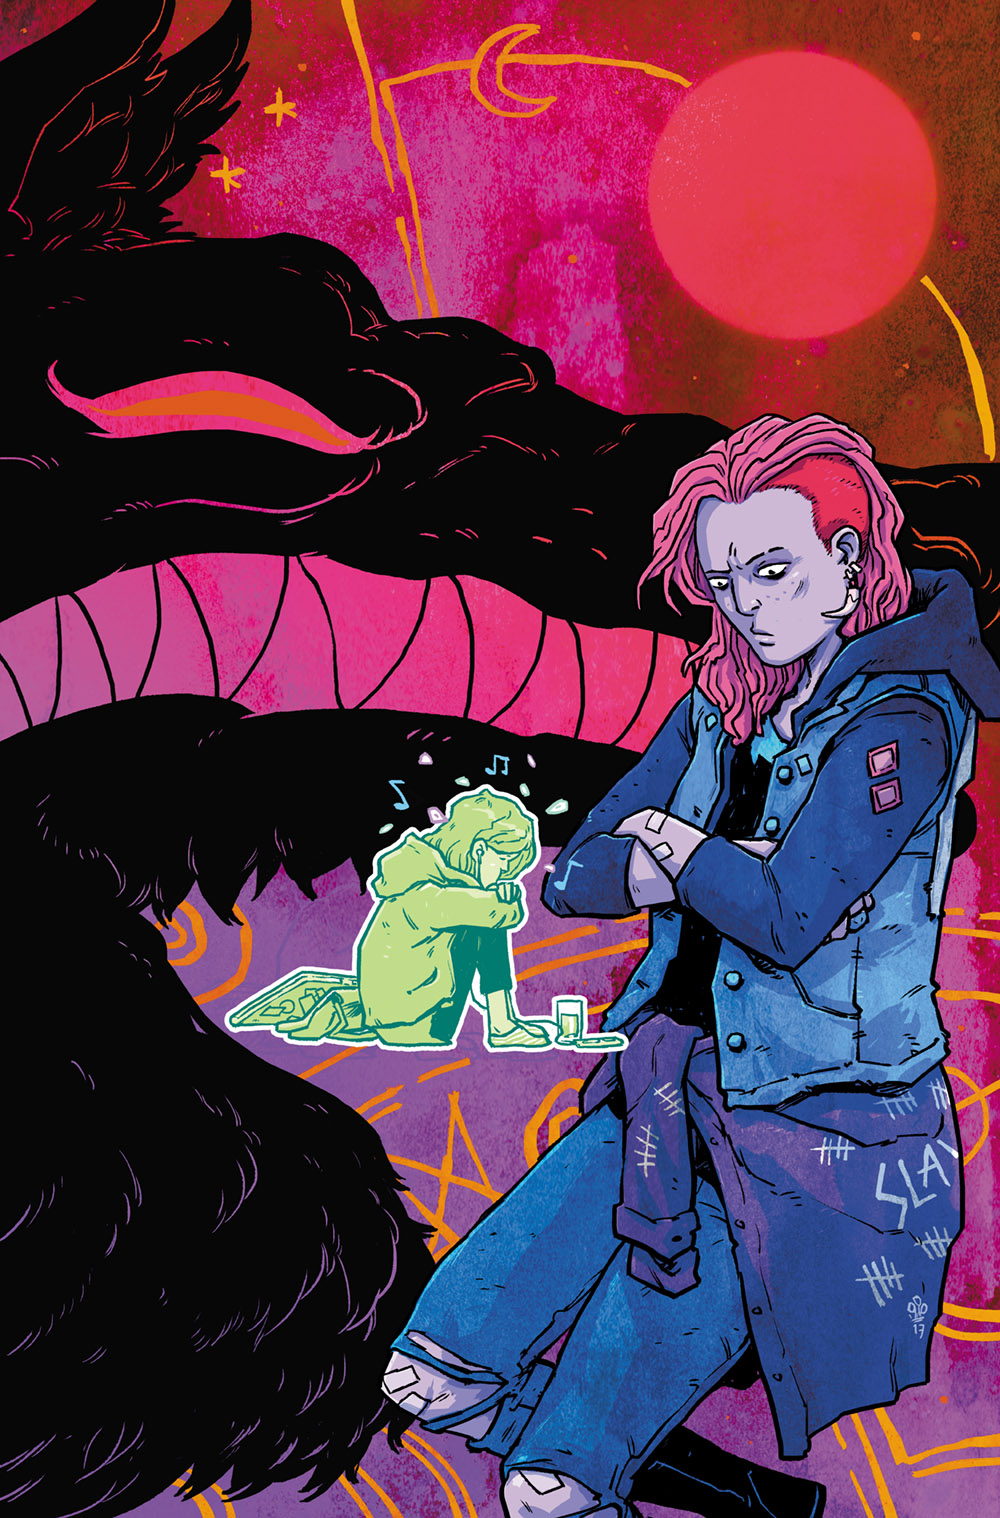 LUCY_Cover3_COL6.jpg